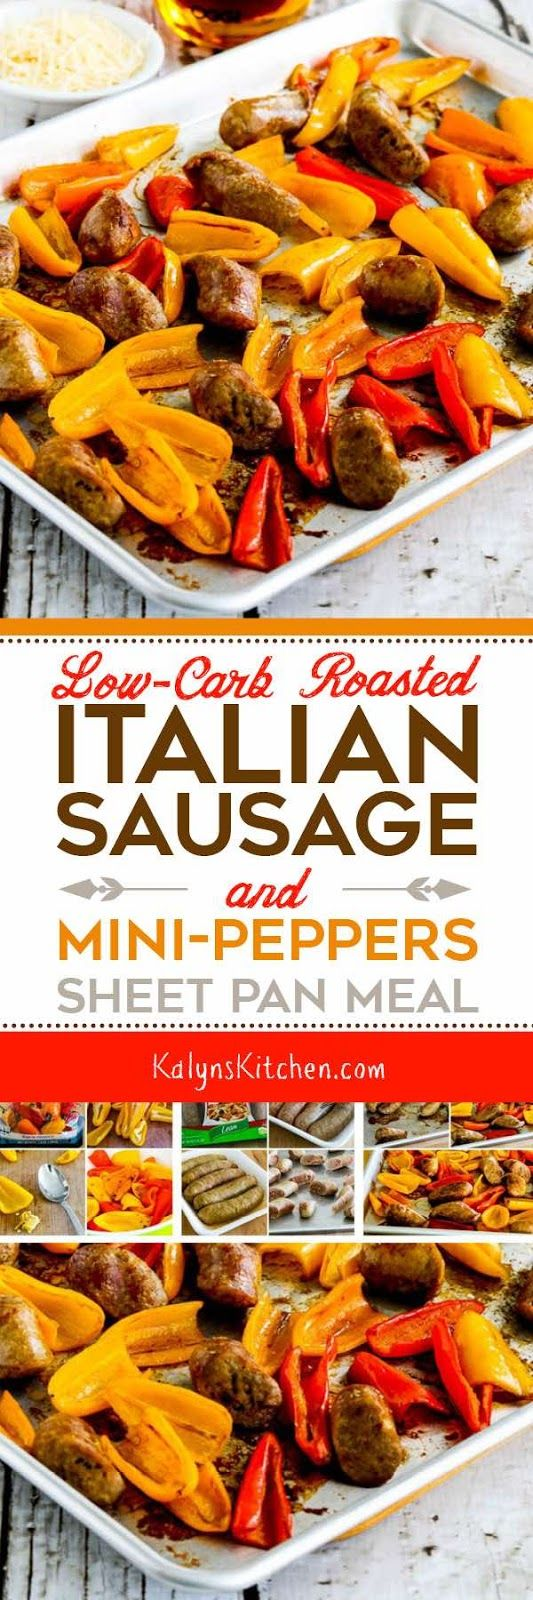 This Low-Carb Roasted Italian Sausage and Sweet Mini-Peppers Sheet Pan Meal is easy and delicious for a quick dinner on a work night; add some slivers of red onion if you'd like! And this easy and tasty sheet pan meal is low-carb, Keto, low-glycemic, gluten-free (with gluten-free sausage), and South Beach Diet friendly. [found on KalynsKitchen.com]